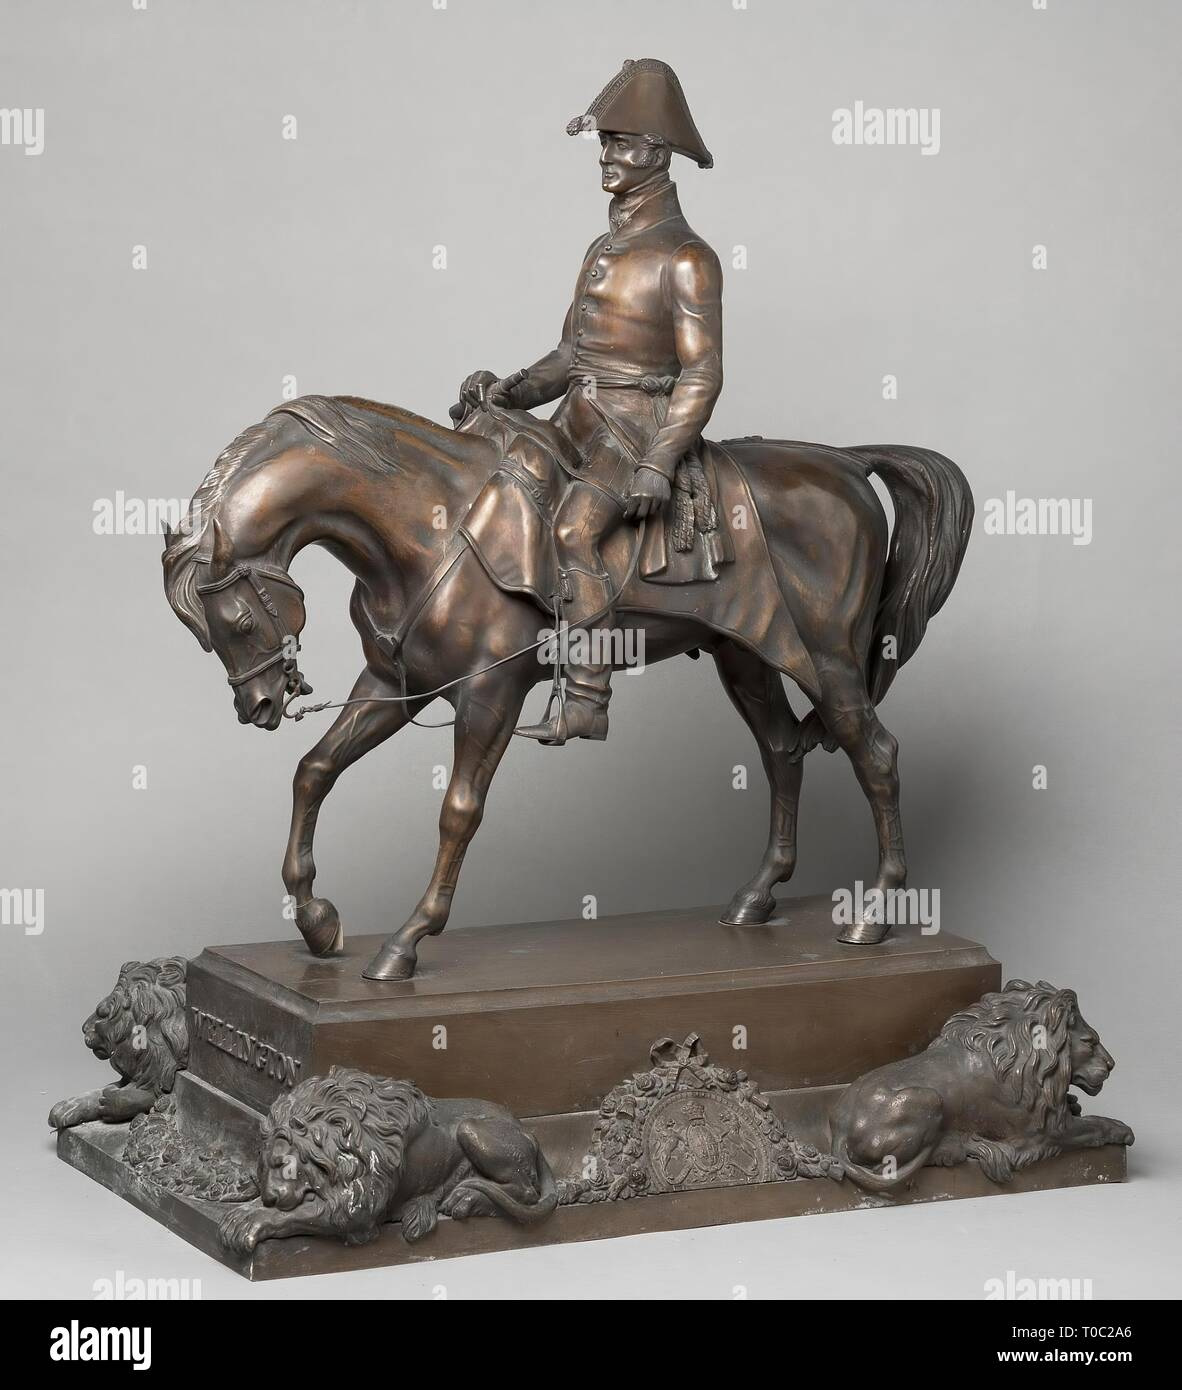 'Equestrian Statue of A. Wellesley, 1st Duke of Wellington'. Russia, 1846. Dimensions: 82x71 cm. Museum: State Hermitage, St. Petersburg. Author: Alfred D'Orsay. - Stock Image